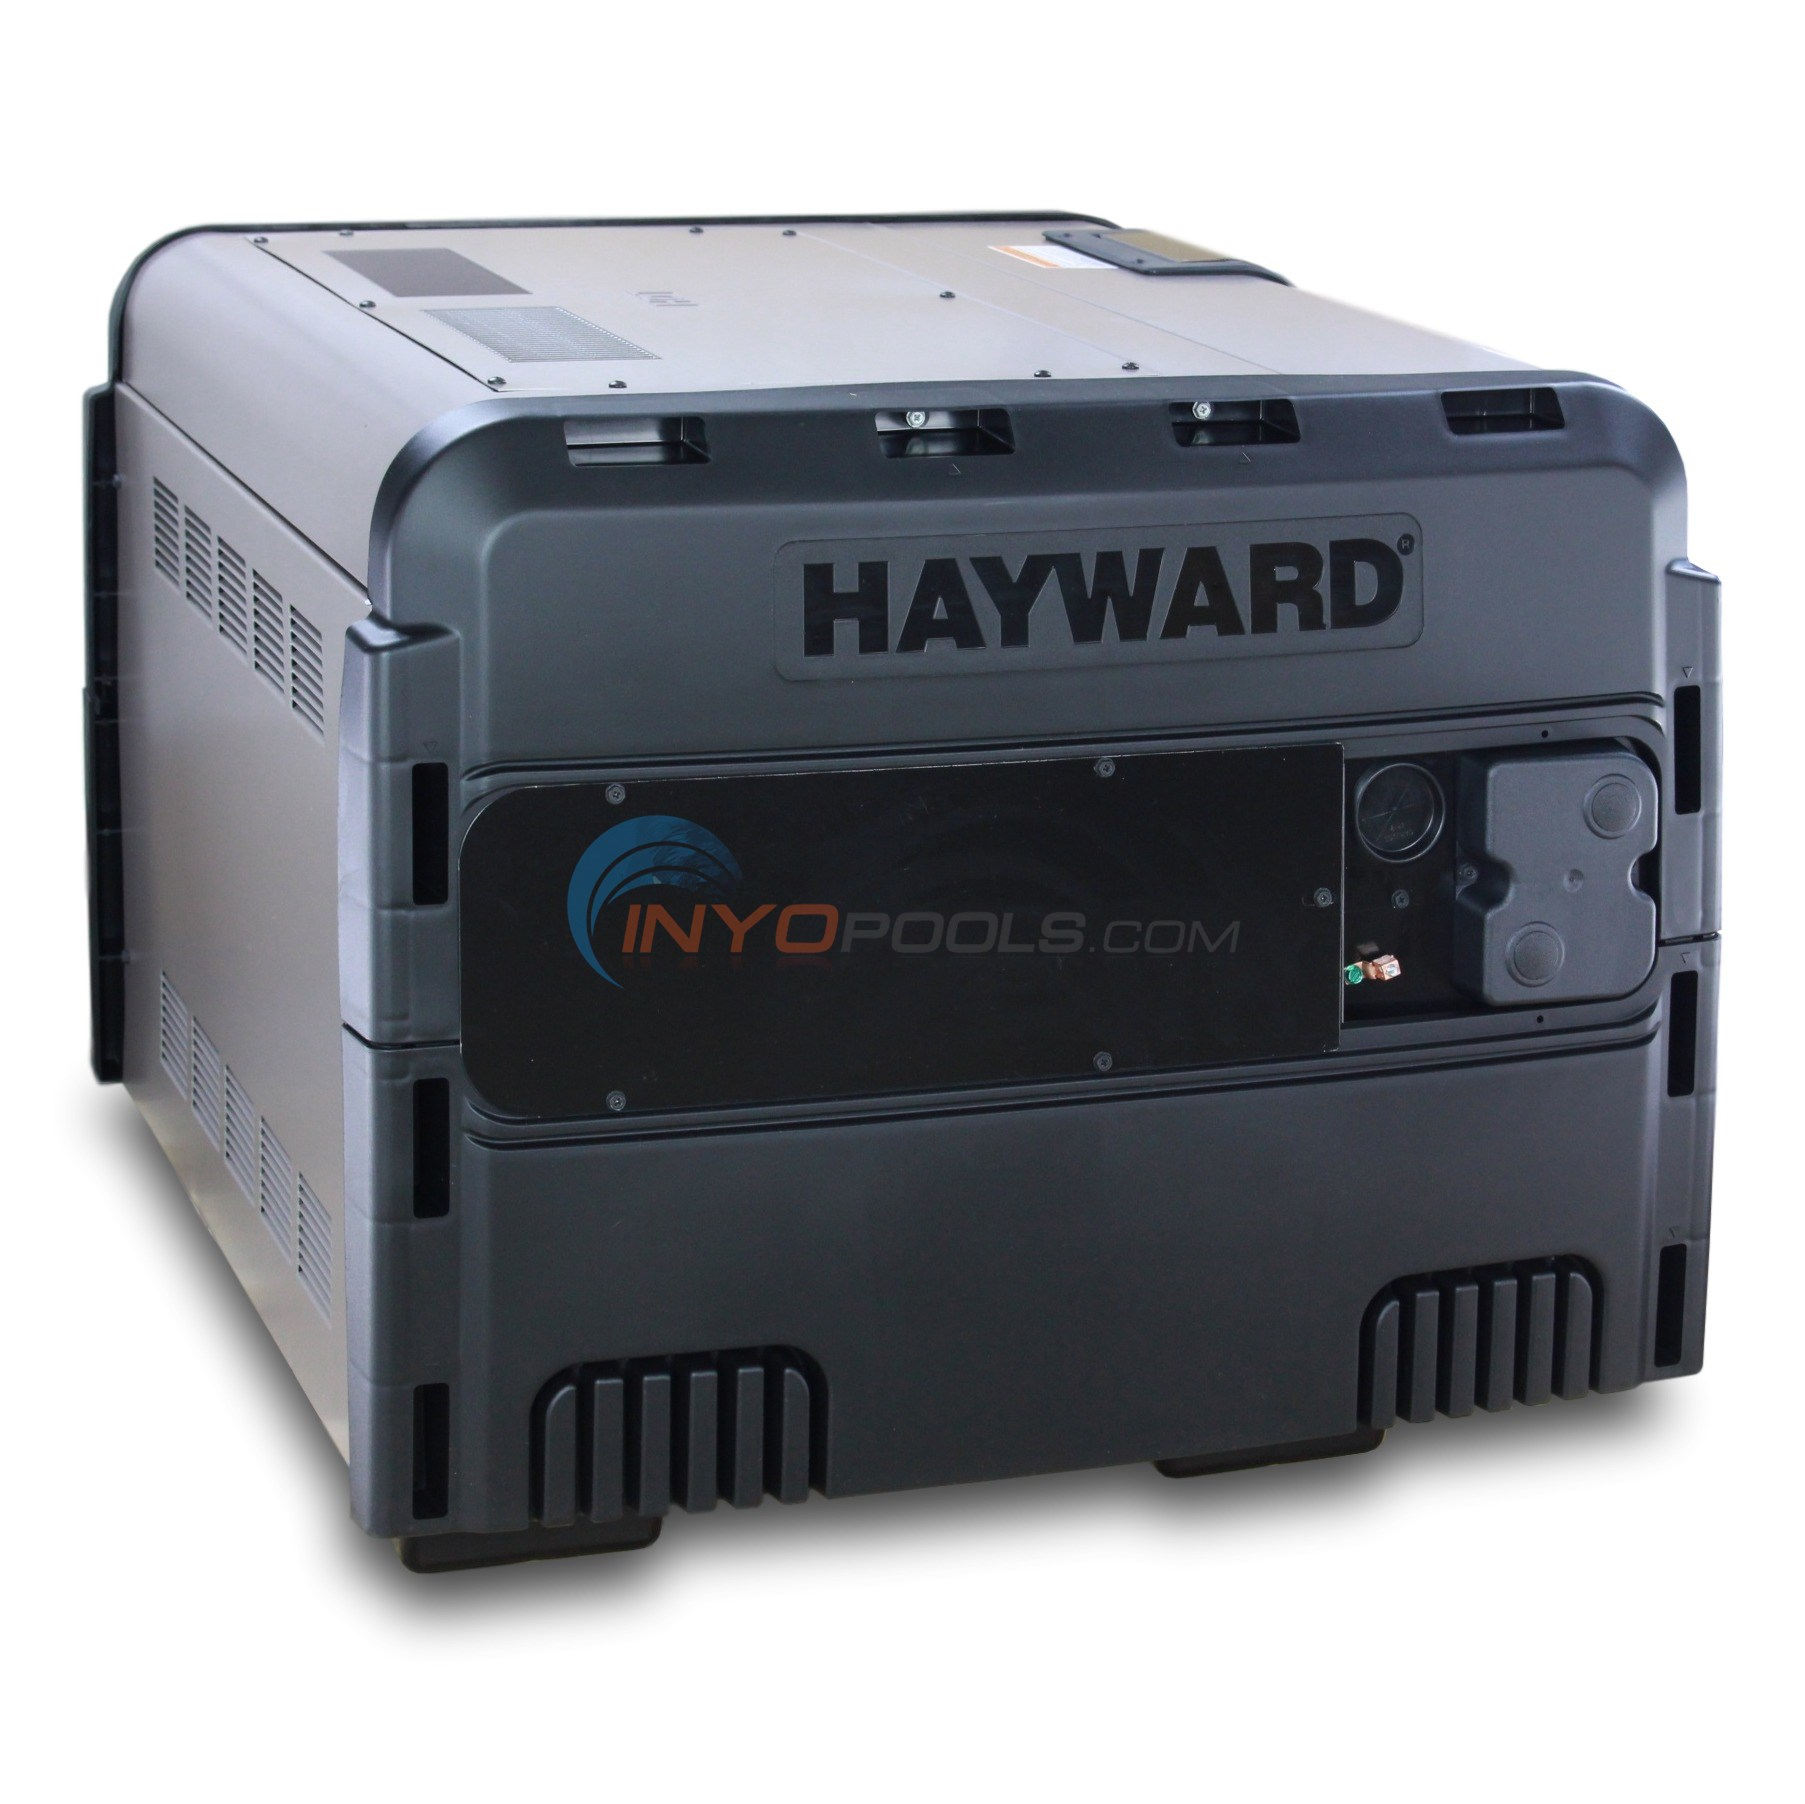 hayward h400fdn 04?format=jpg&scale=both&anchor=middlecenter&autorotate=true&mode=pad&width=650&height=650 hayward pool heater universal h series low nox 250k btu ng Hayward H250 Pool Heater and Spa at bayanpartner.co